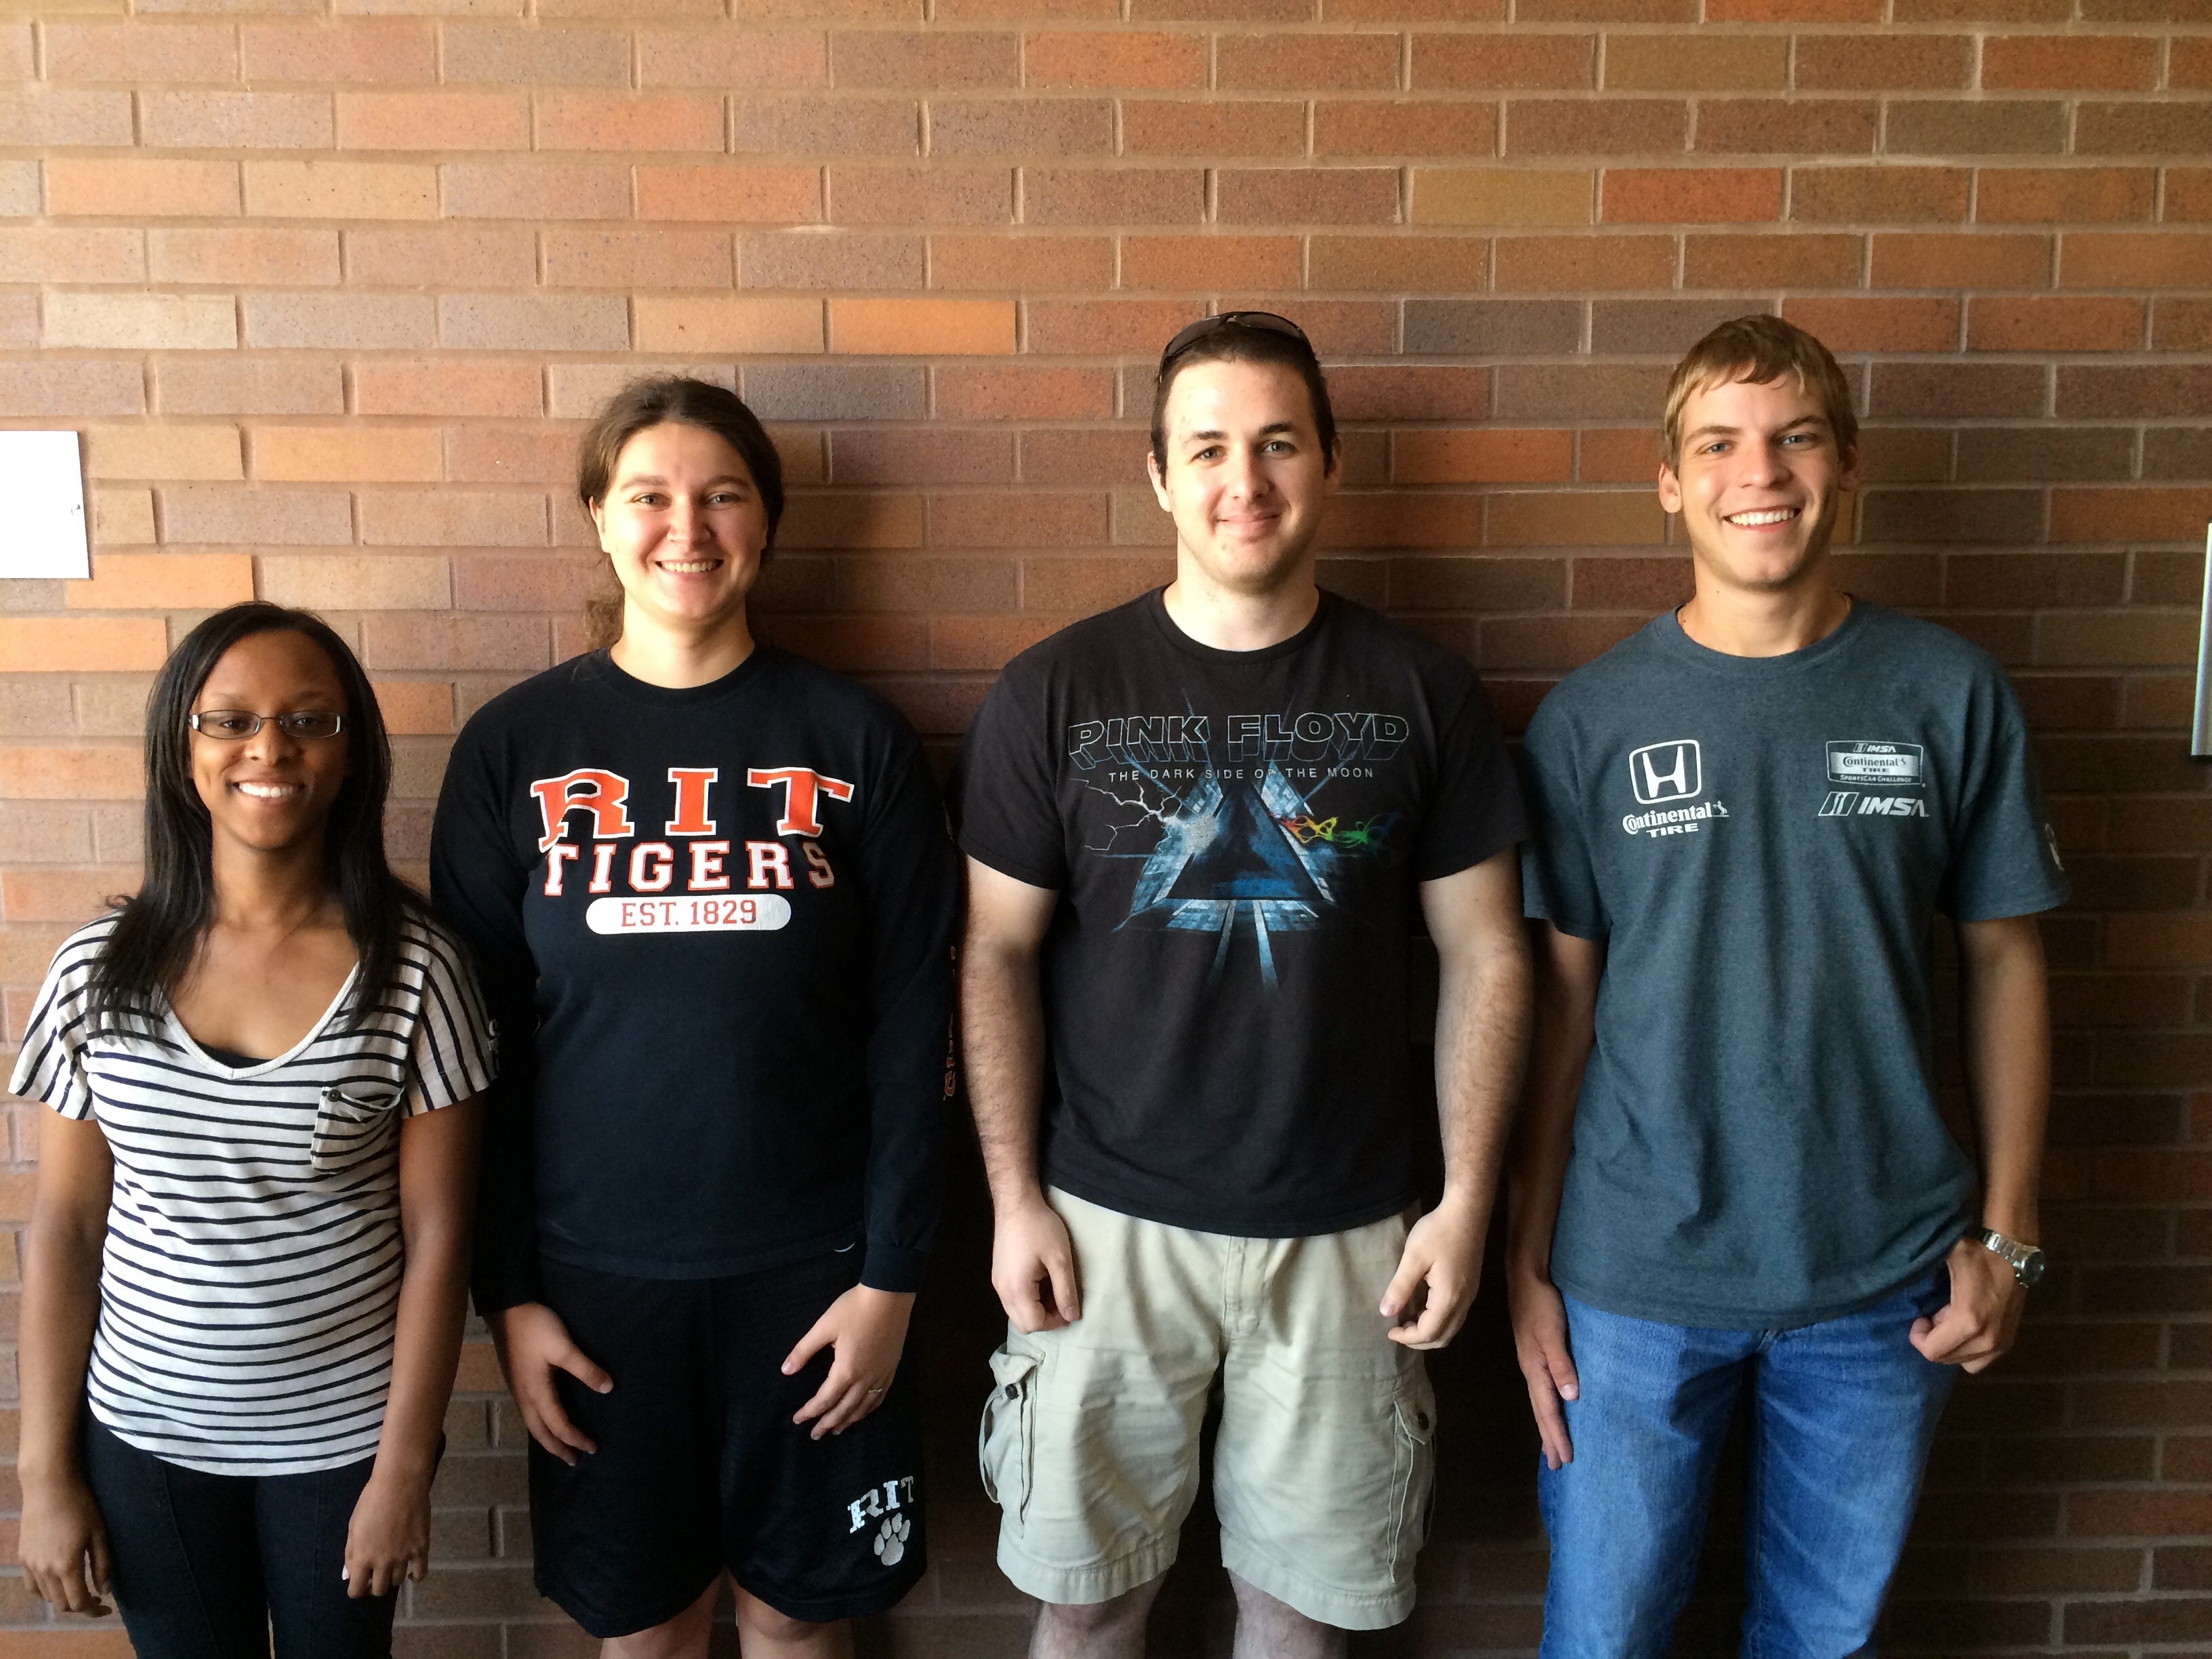 From left to right: Maxine Laroche, Angelica Hambrecht, Justin Kibler, and Nate Watts